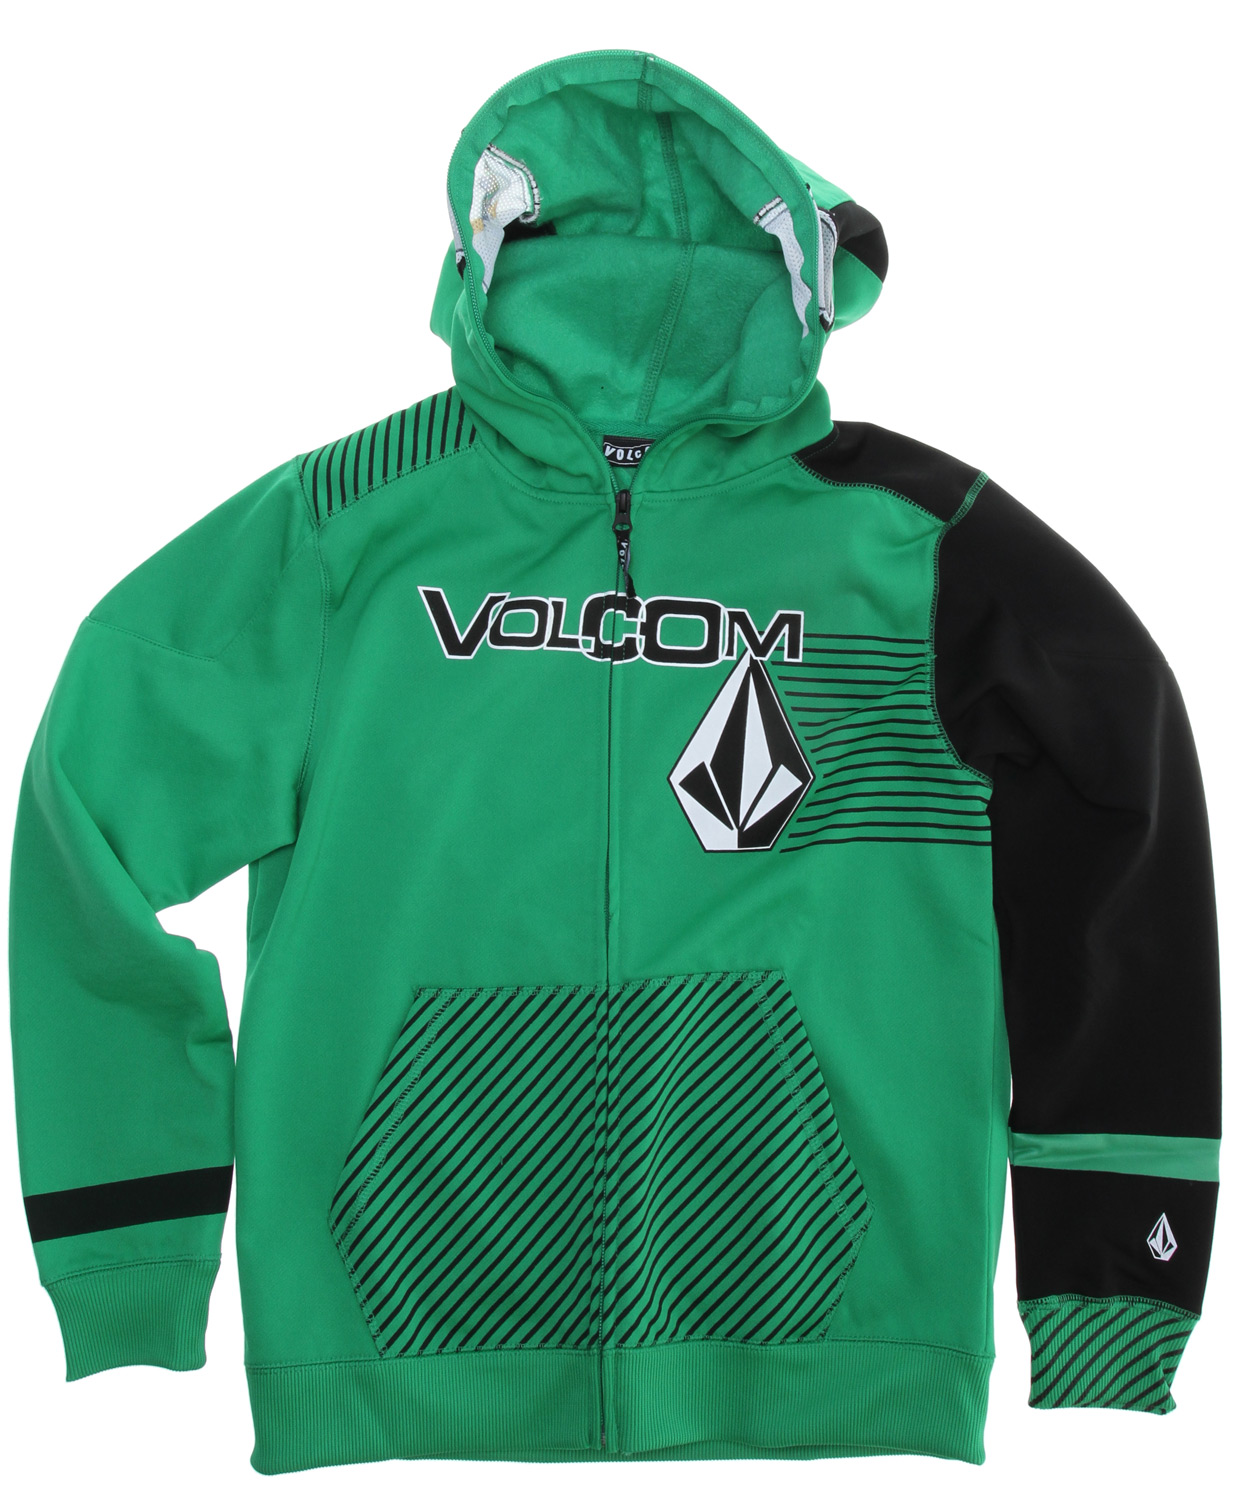 Surf Key Features of the Volcom Hammer Full Zip Hoodie: Hydrophobic Fleece Ribbed Cuff Ribbed Hem Fully Enclosed Zip Hood Gigi Ruff Printed See-Through Mesh 'Goggles' Volcom Woven Label Volcom, Stone And Stripes Screen Let It Storm Screen - $70.00